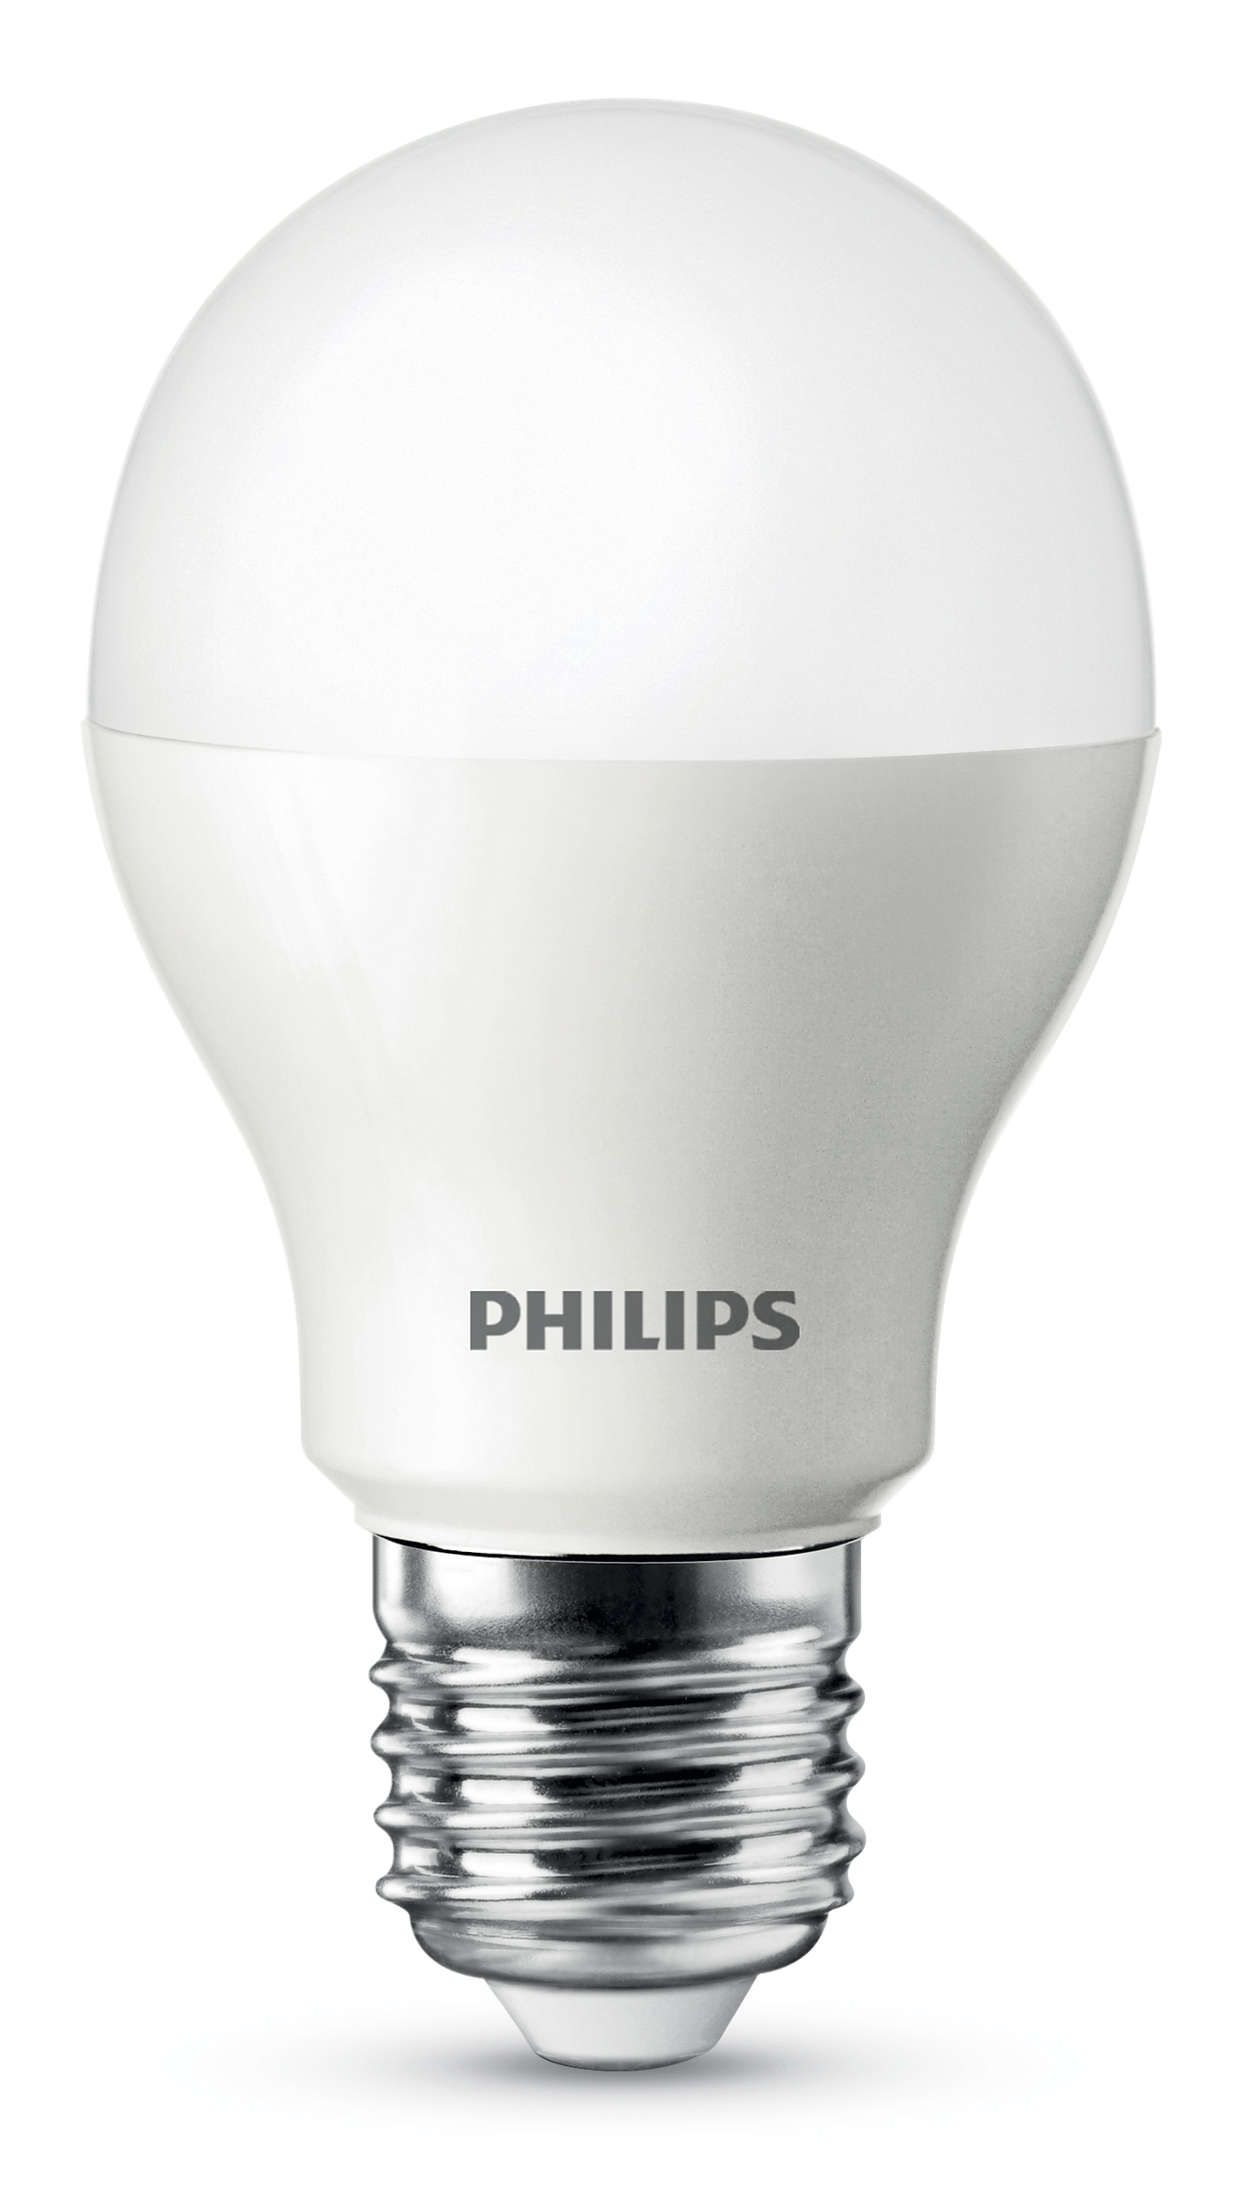 LED Lampe 8718291193029 | Philips